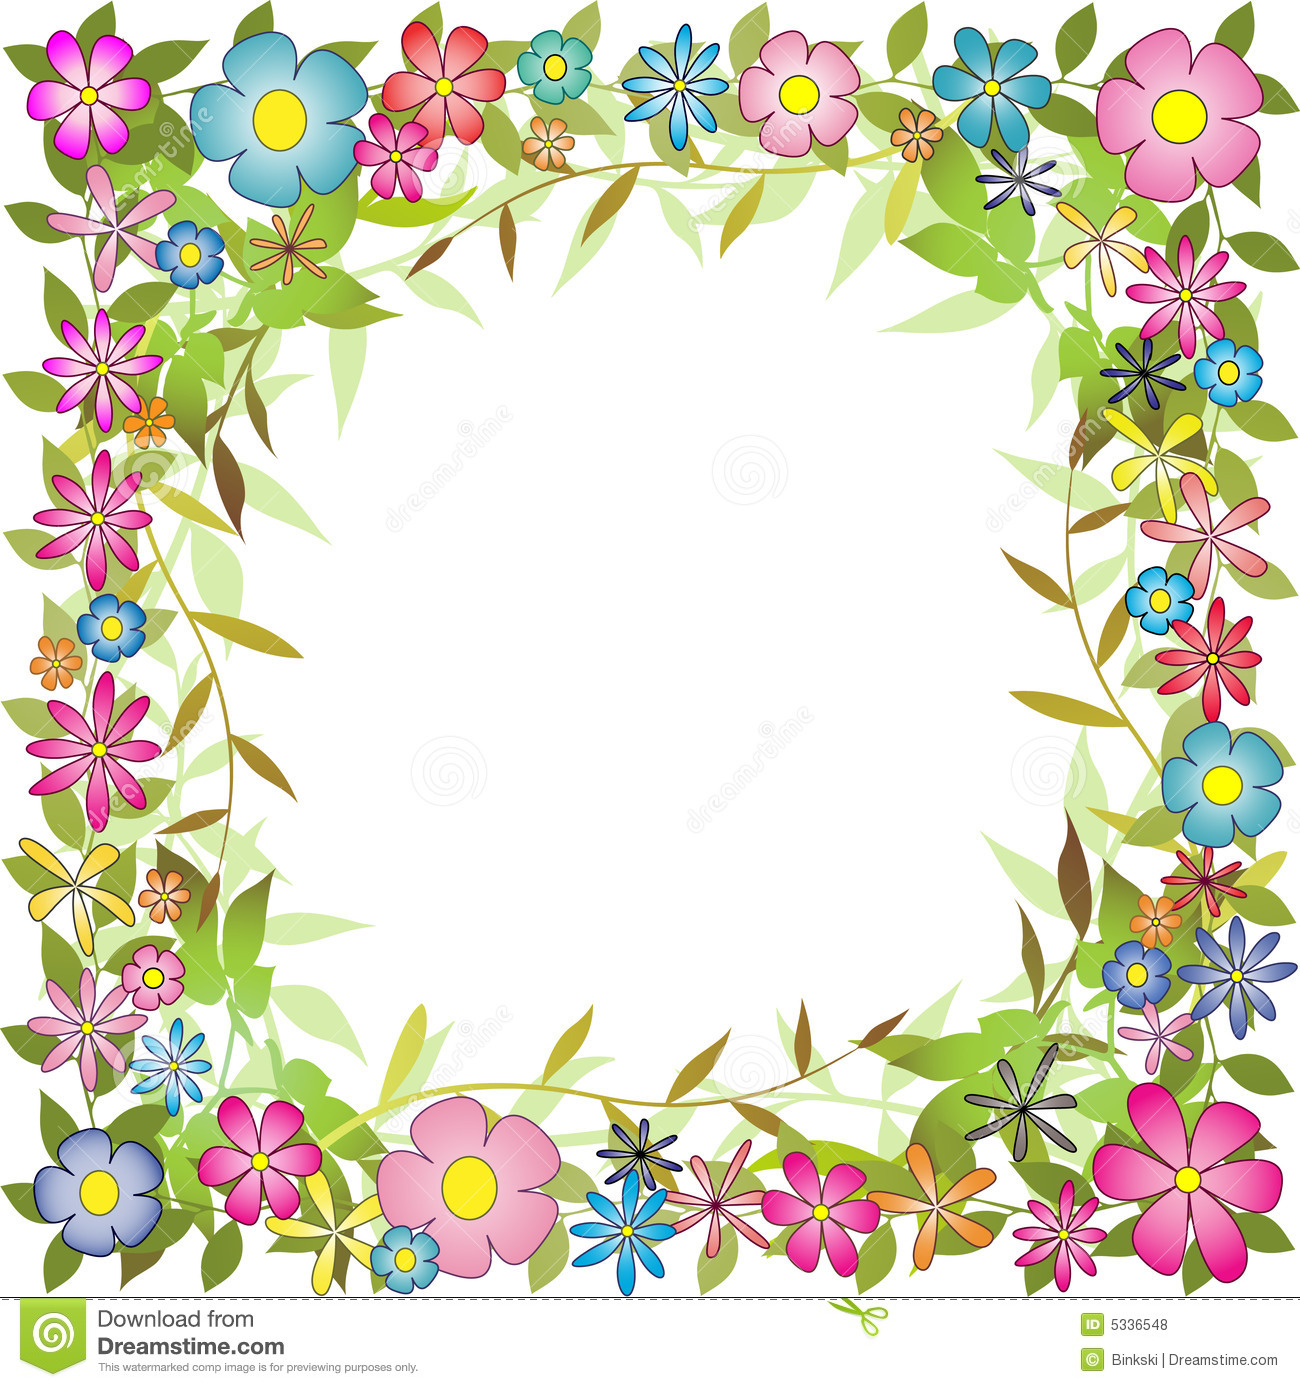 hight resolution of floral background border